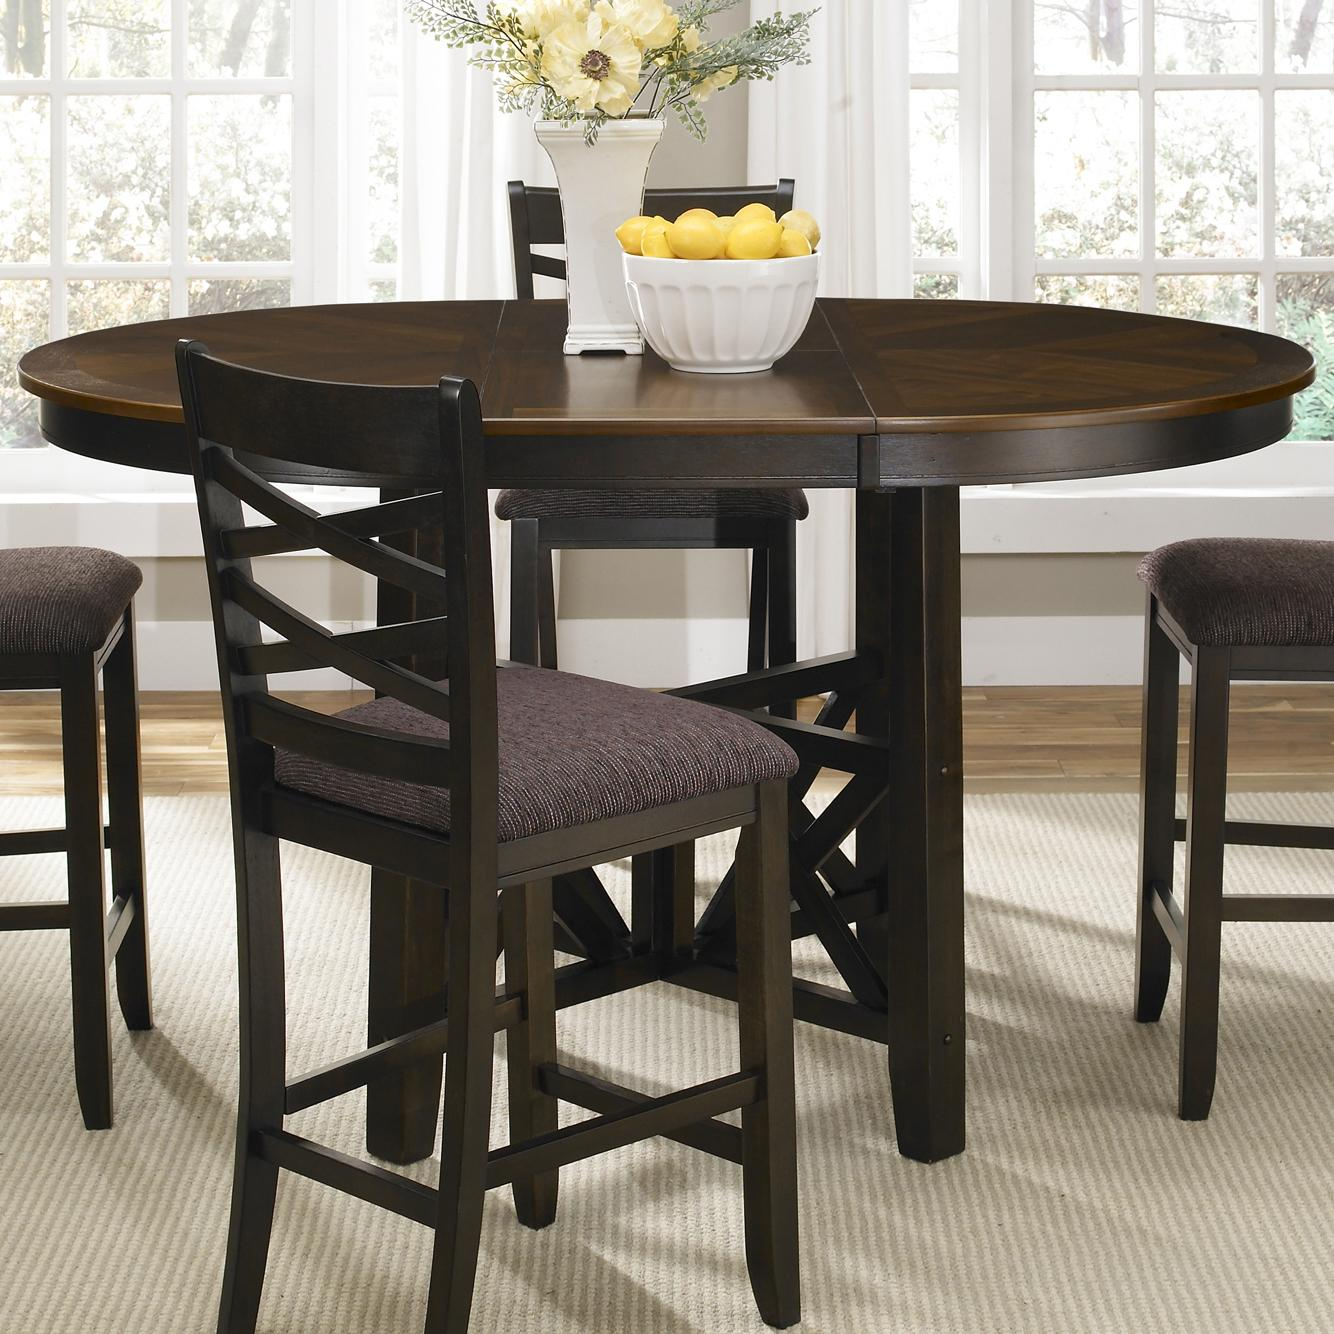 Liberty Furniture Bistro II Gathering Height Table - Item Number: 74-GT-4866B+GT4866